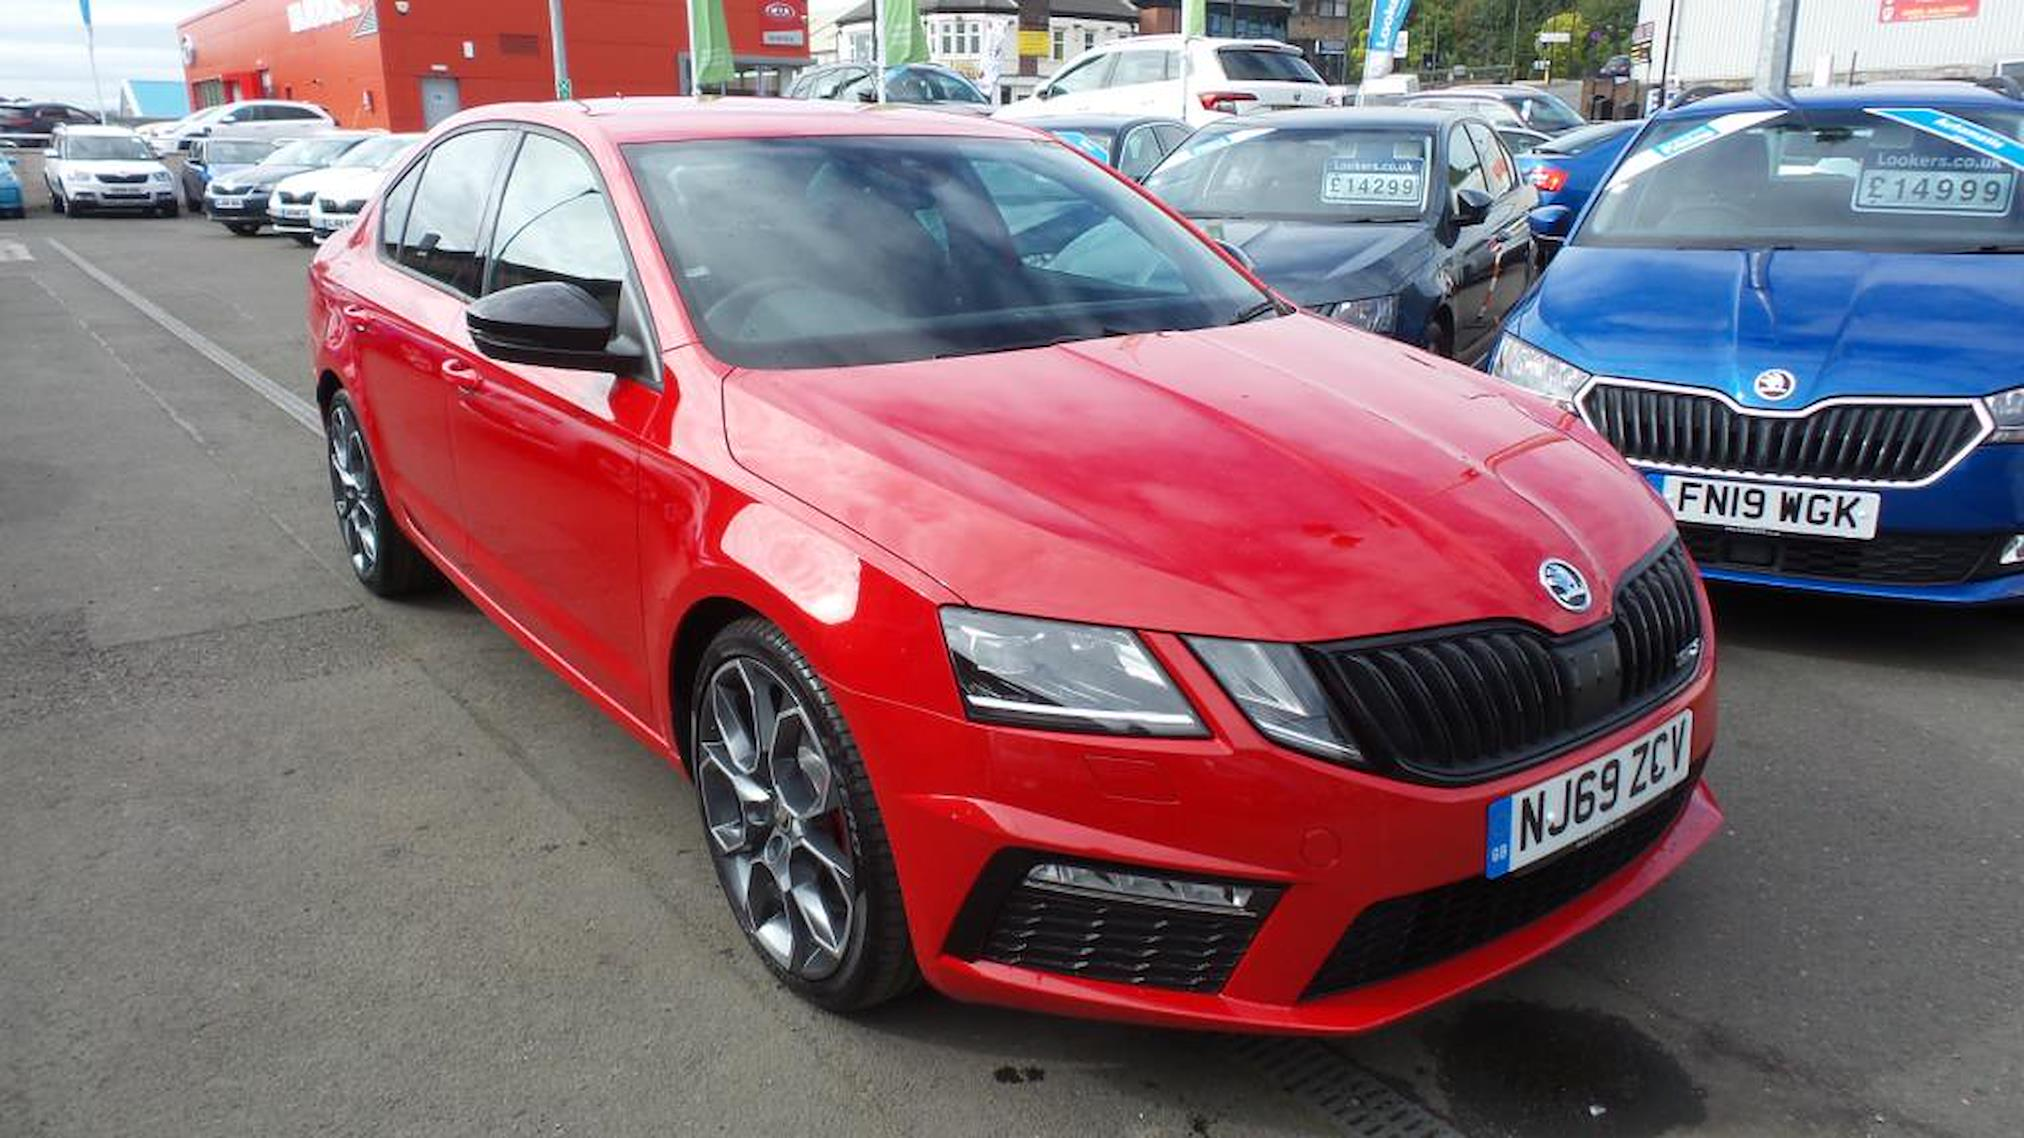 Nearly New OCTAVIA SKODA 2.0 TDI CR vRS 4x4 5dr DSG [7 ...